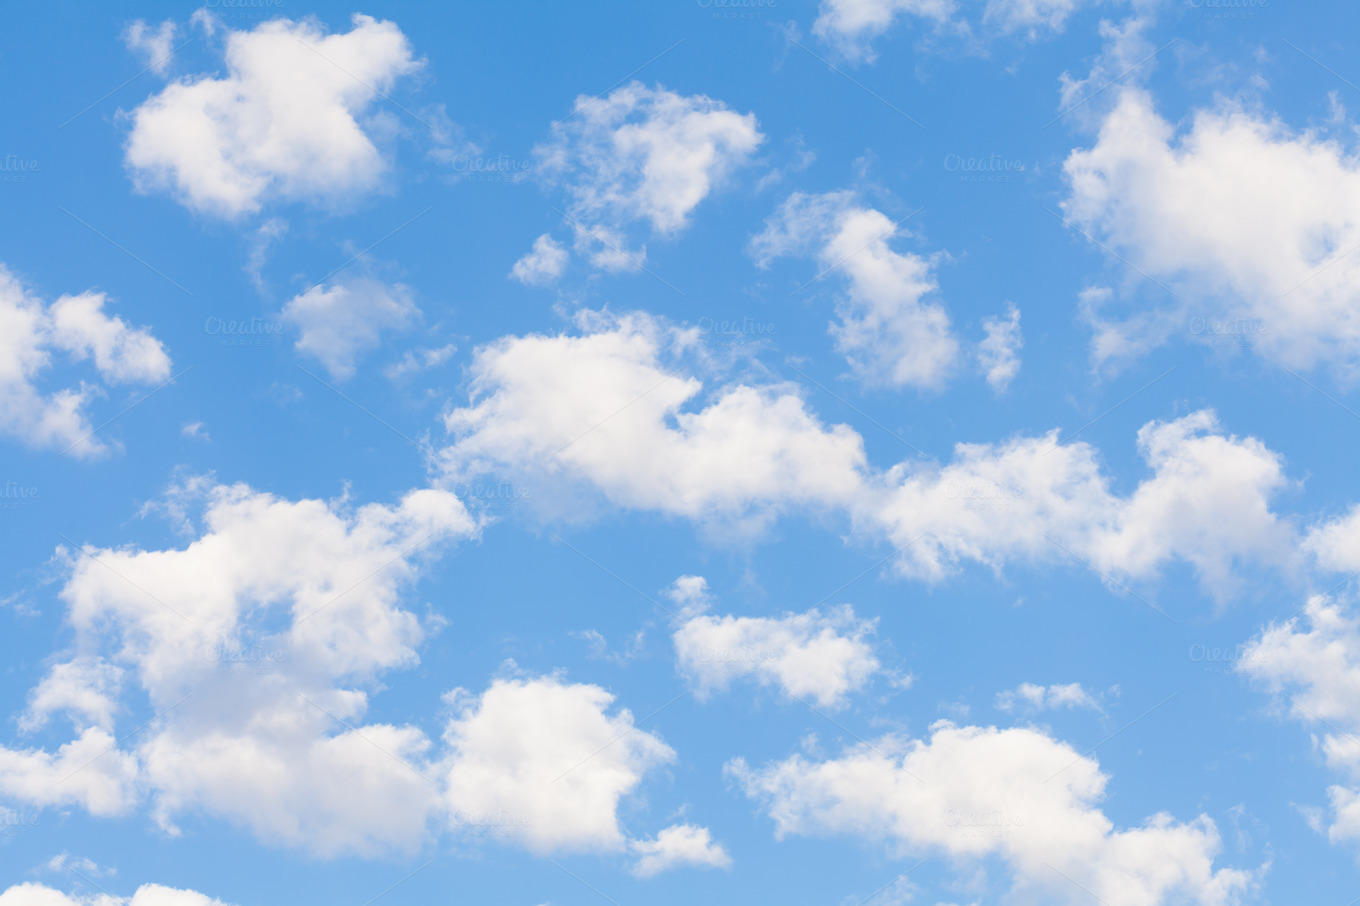 Blue Sky With Clouds Wallpaper 56 Images: Photos On Creative Market